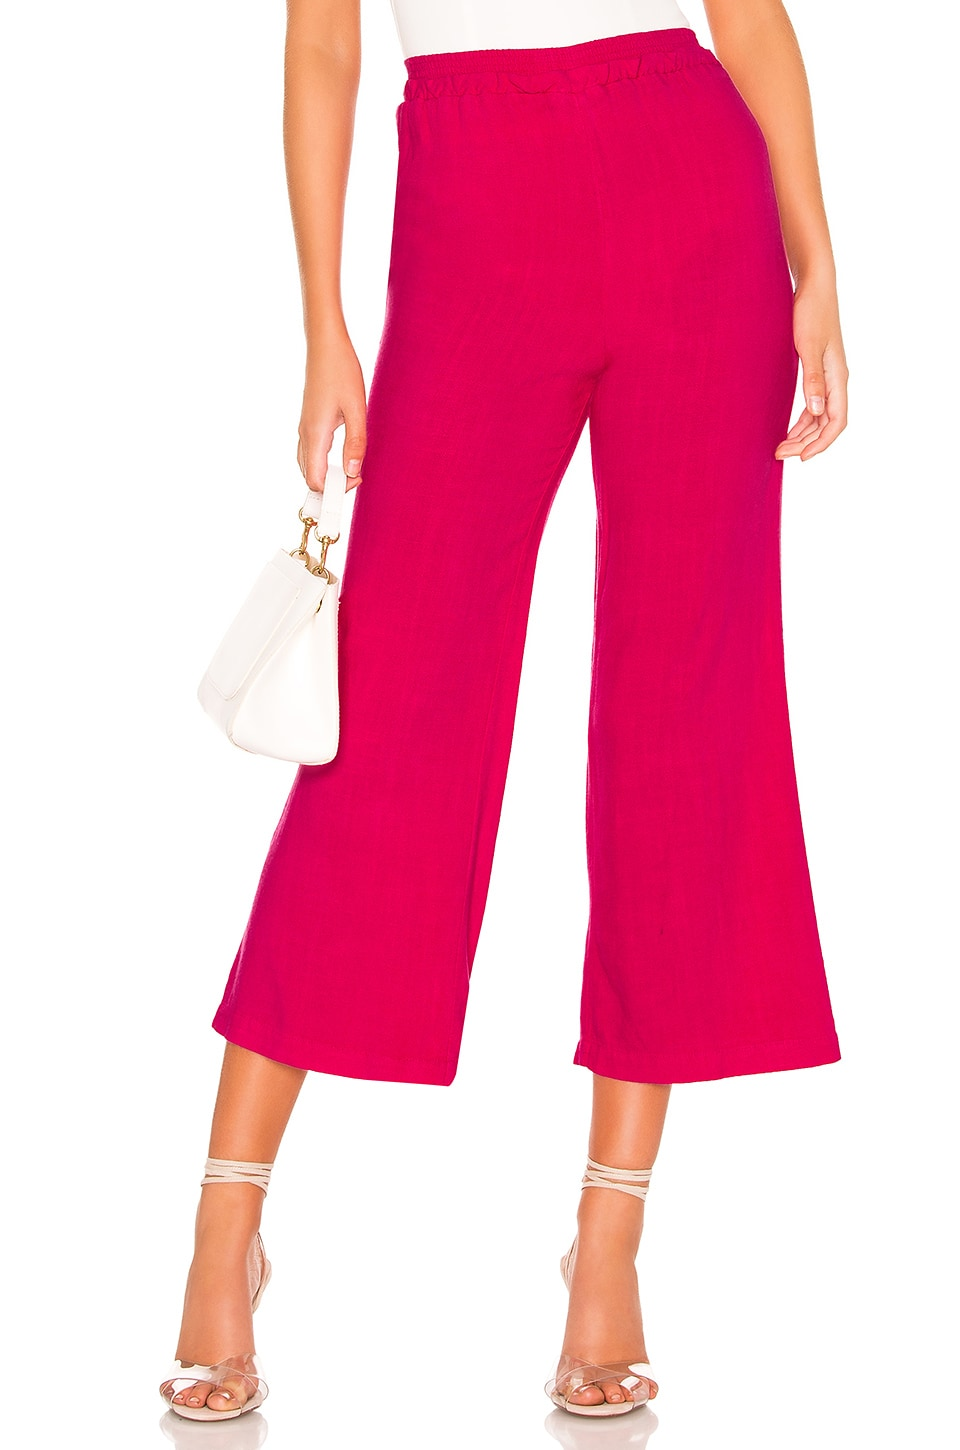 Privacy Please Rosa Pant in Bright Pink